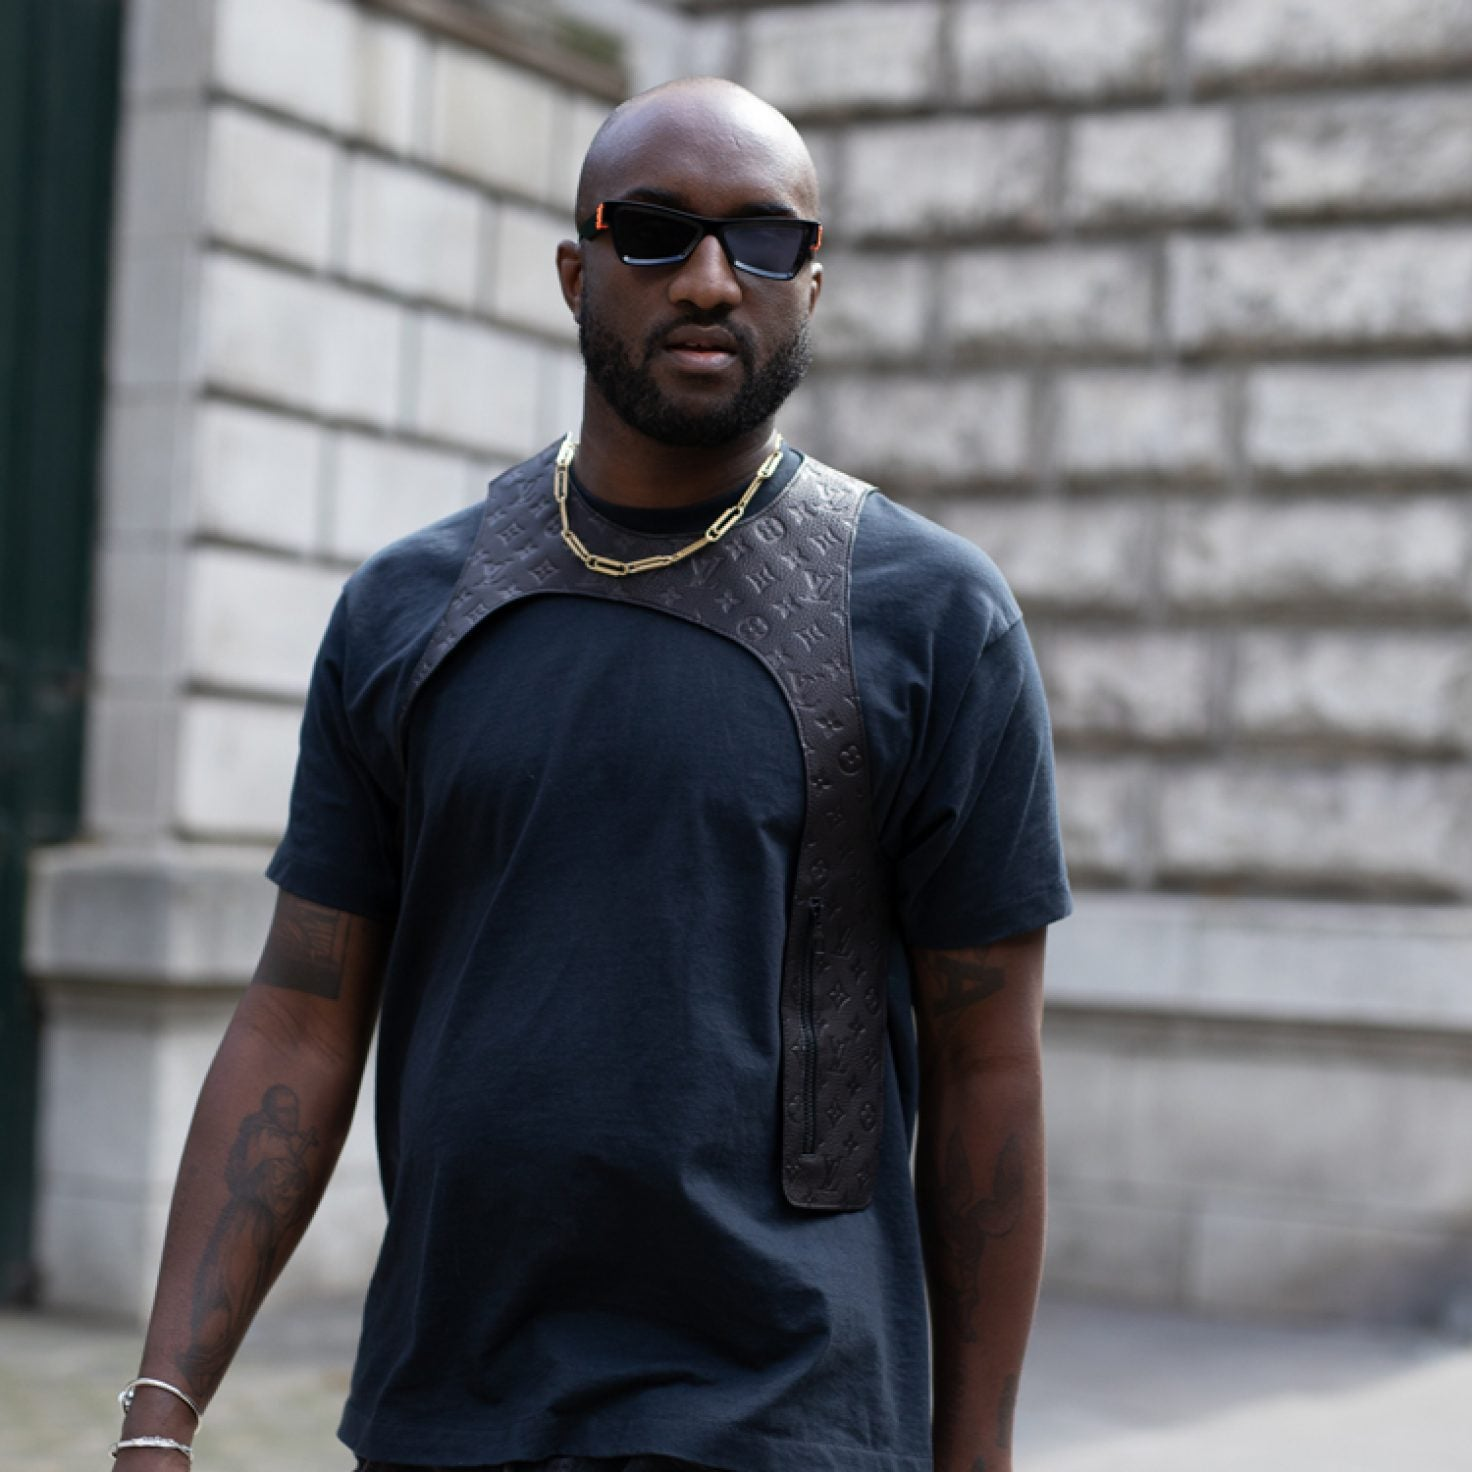 Virgil Abloh Explains Why His 2019 Off-White Hoodie 'Elevates Black Voices' In Fashion